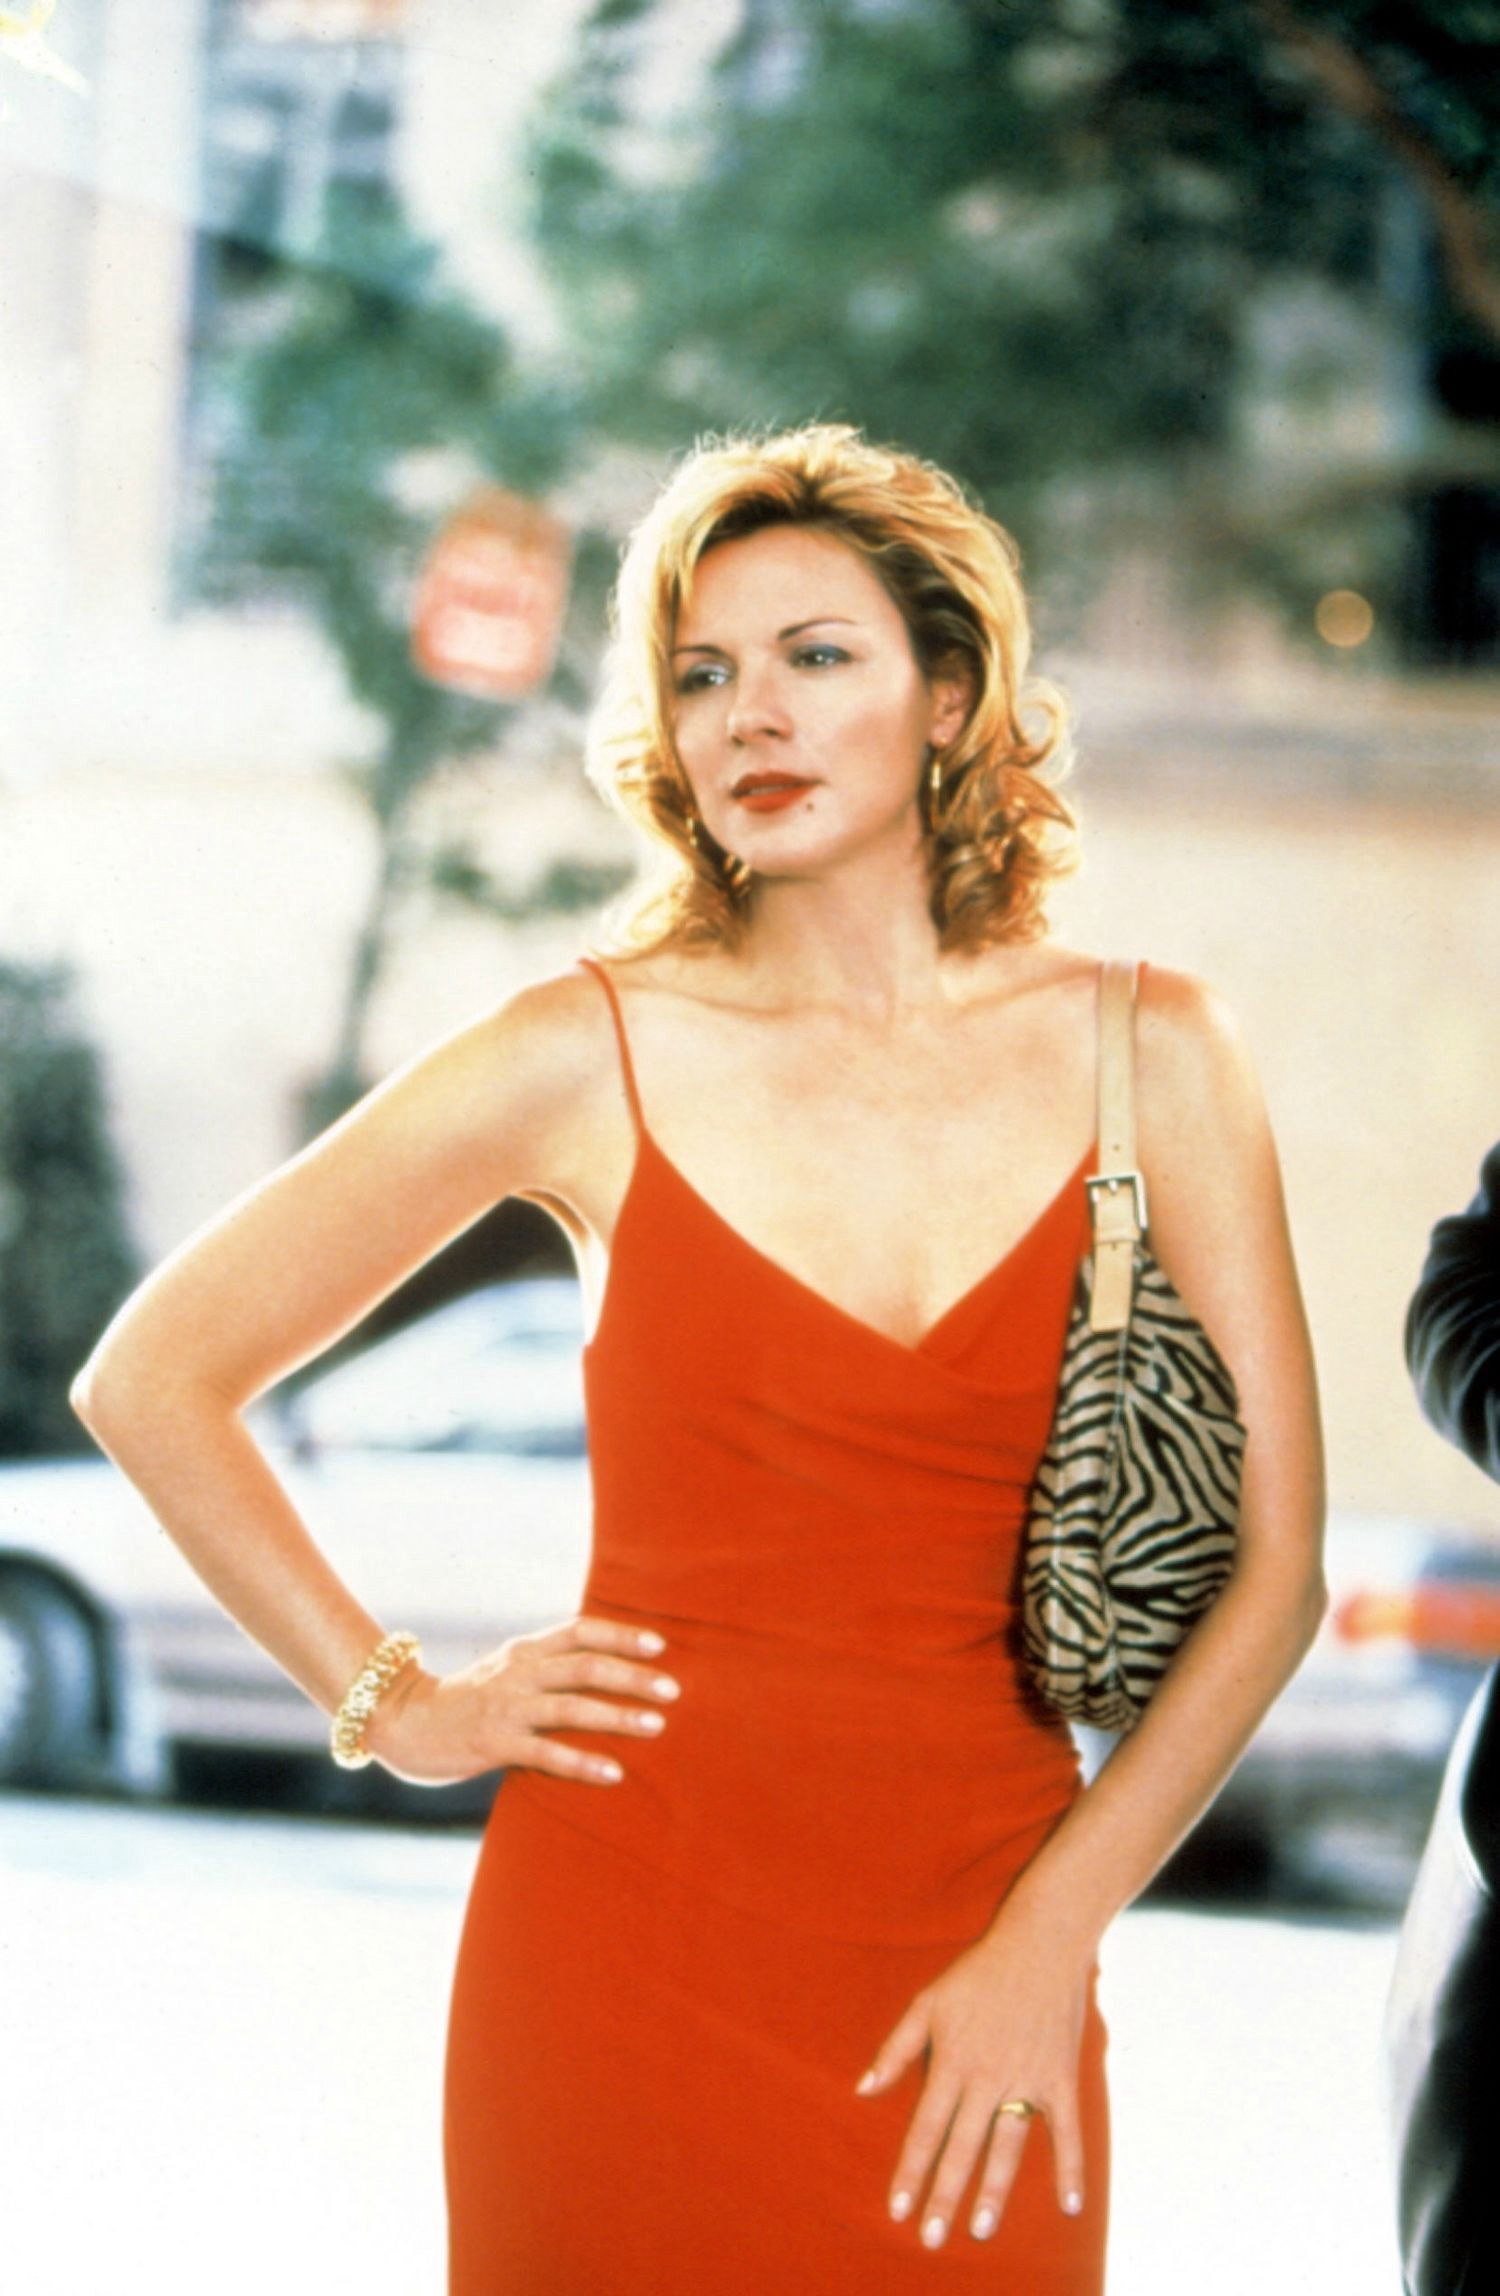 Still of Kim Cattrall as Samantha Jones in a red dress and sexy, confident pose from Sex and the City's fourth season